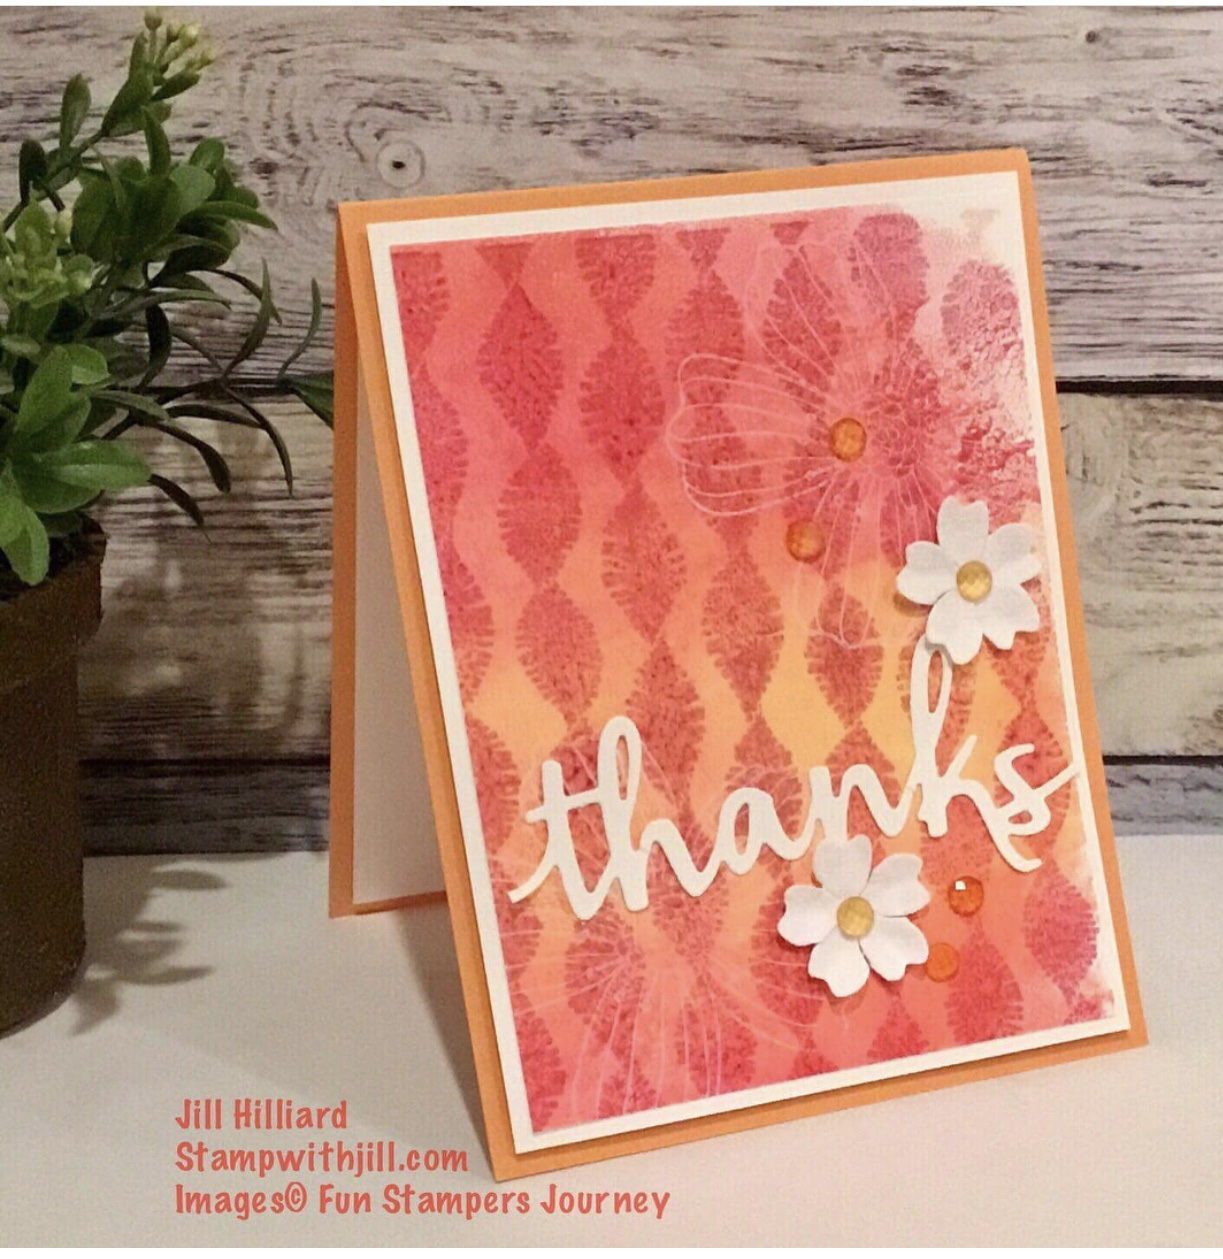 Gel Press card, Fun Stampers Journey